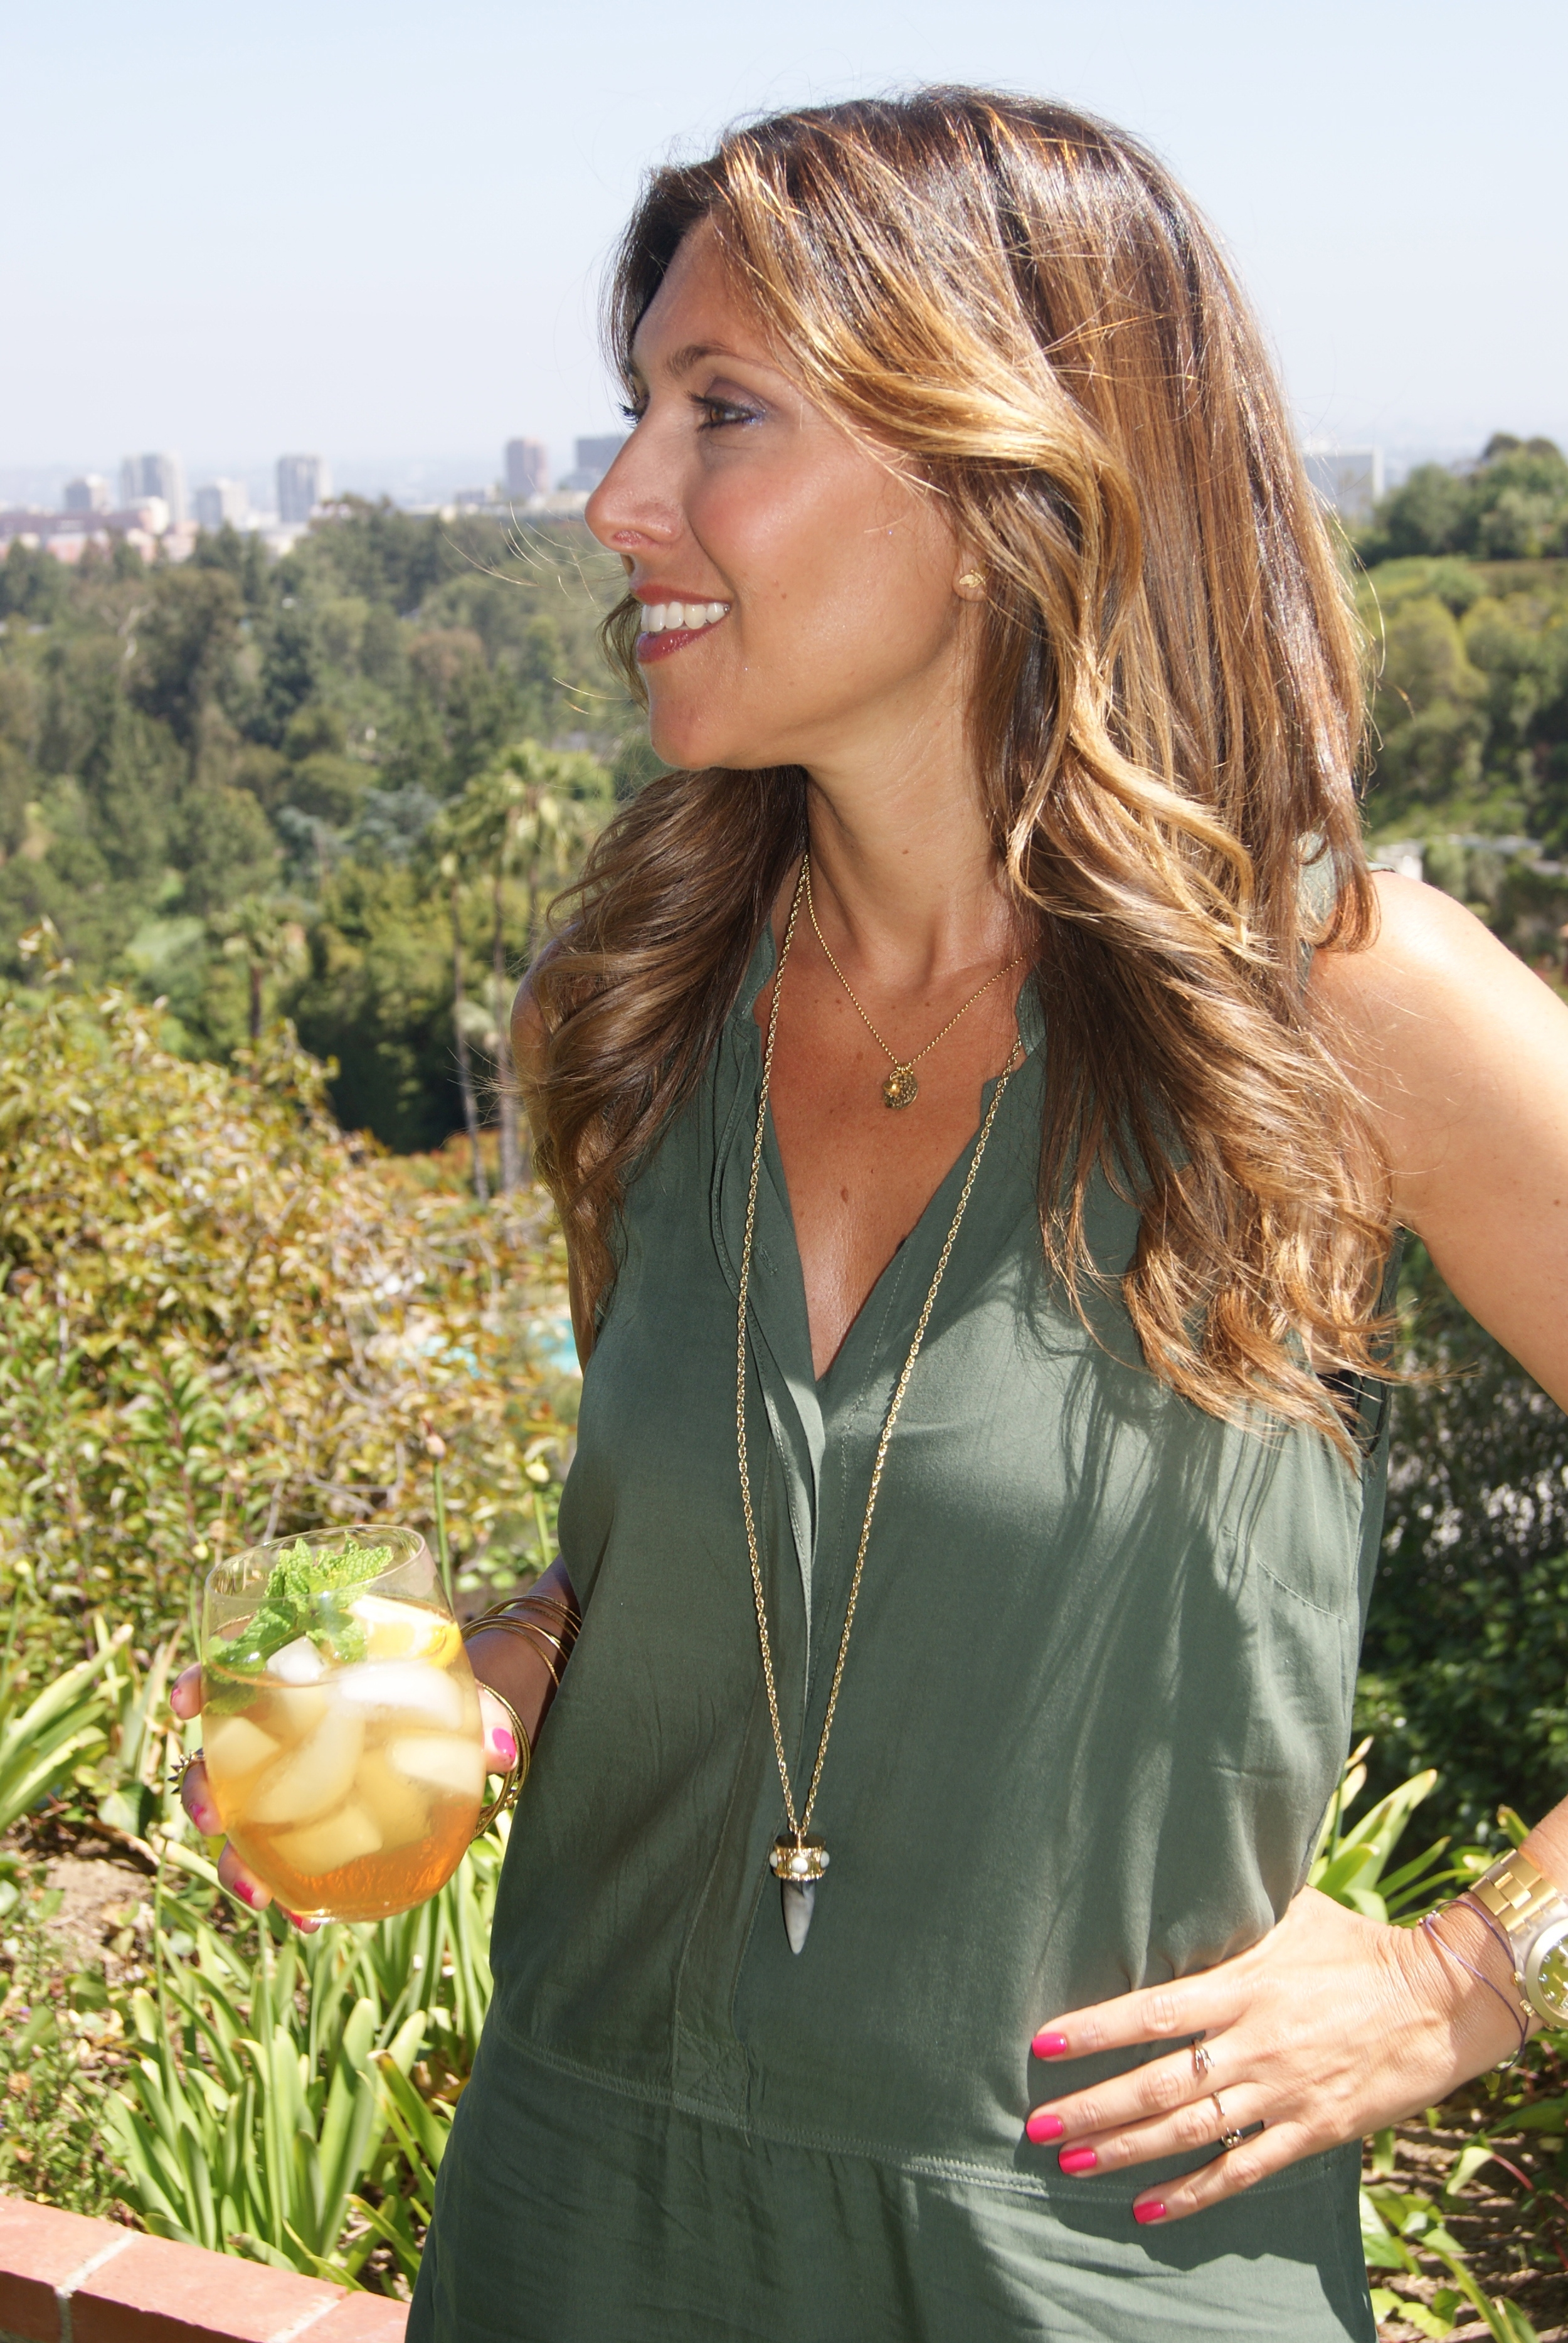 Style with costume jewelry (layered look works well). Horn necklace from Candi Stamm's Jewelryarama.